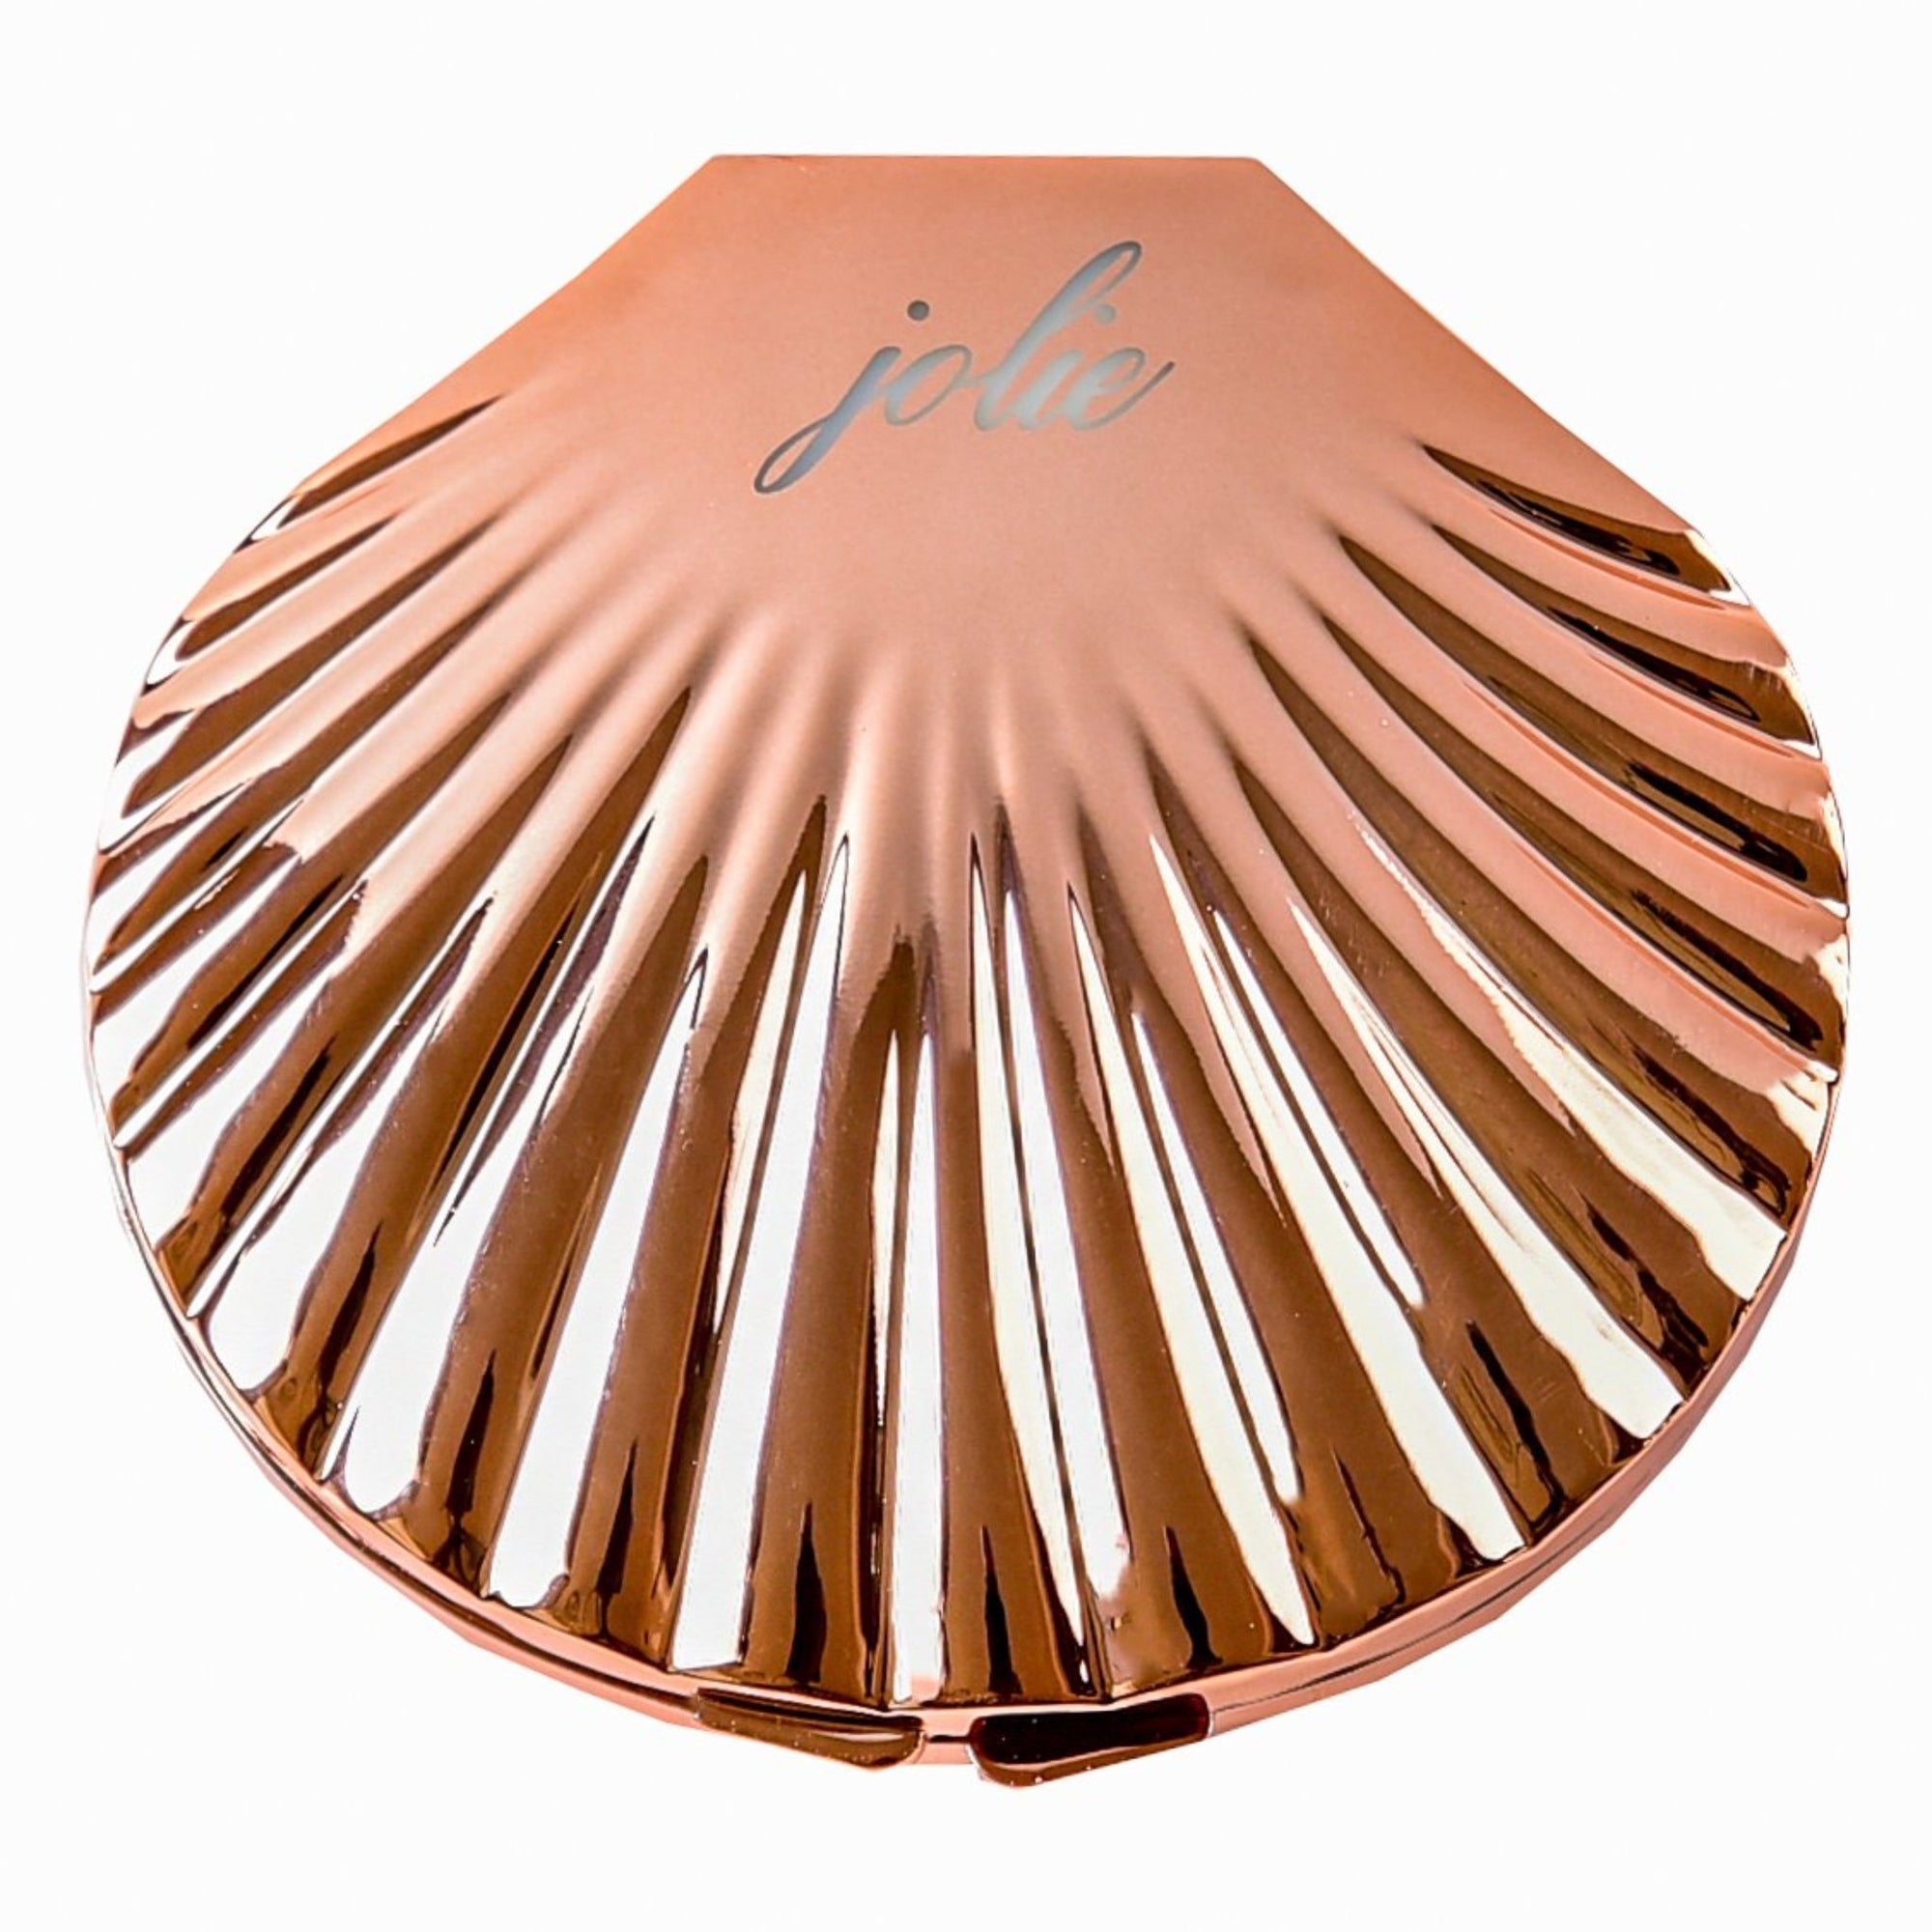 Rose Gold Compact Mermaid Mirror Accessories Jolie Beauty